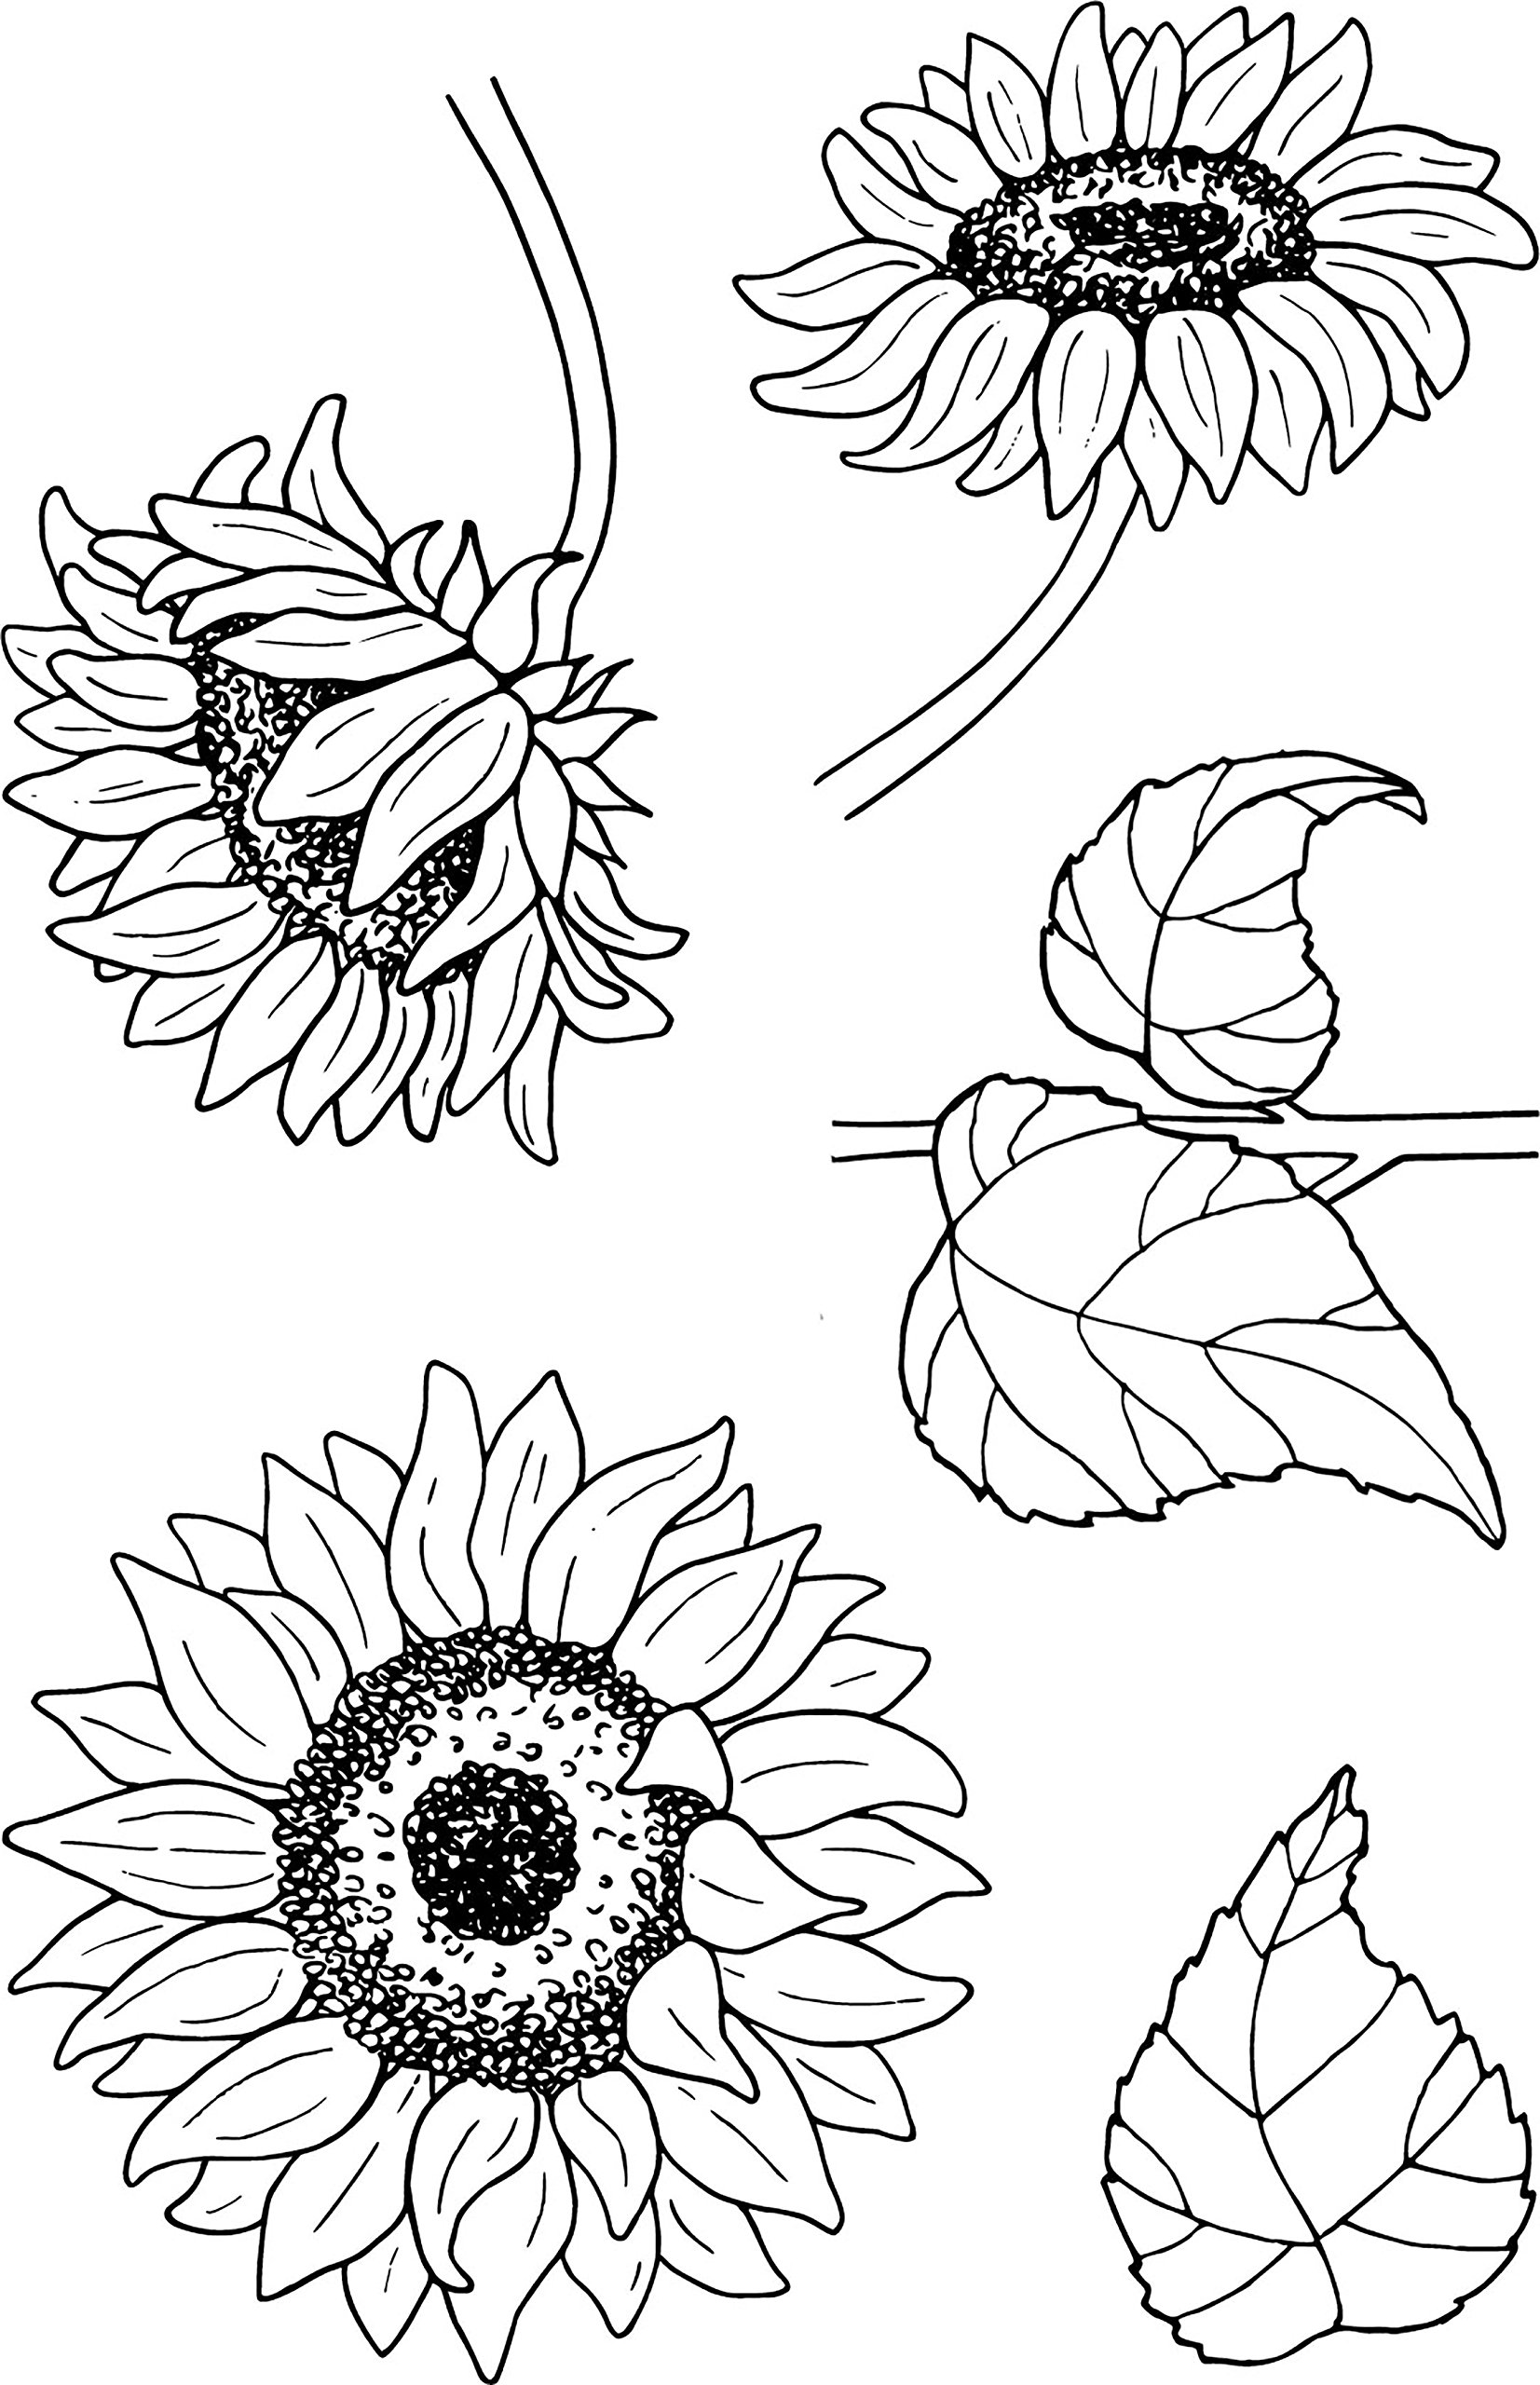 Jane's Doodles Clear Stamps 4''x6''-sunflowers